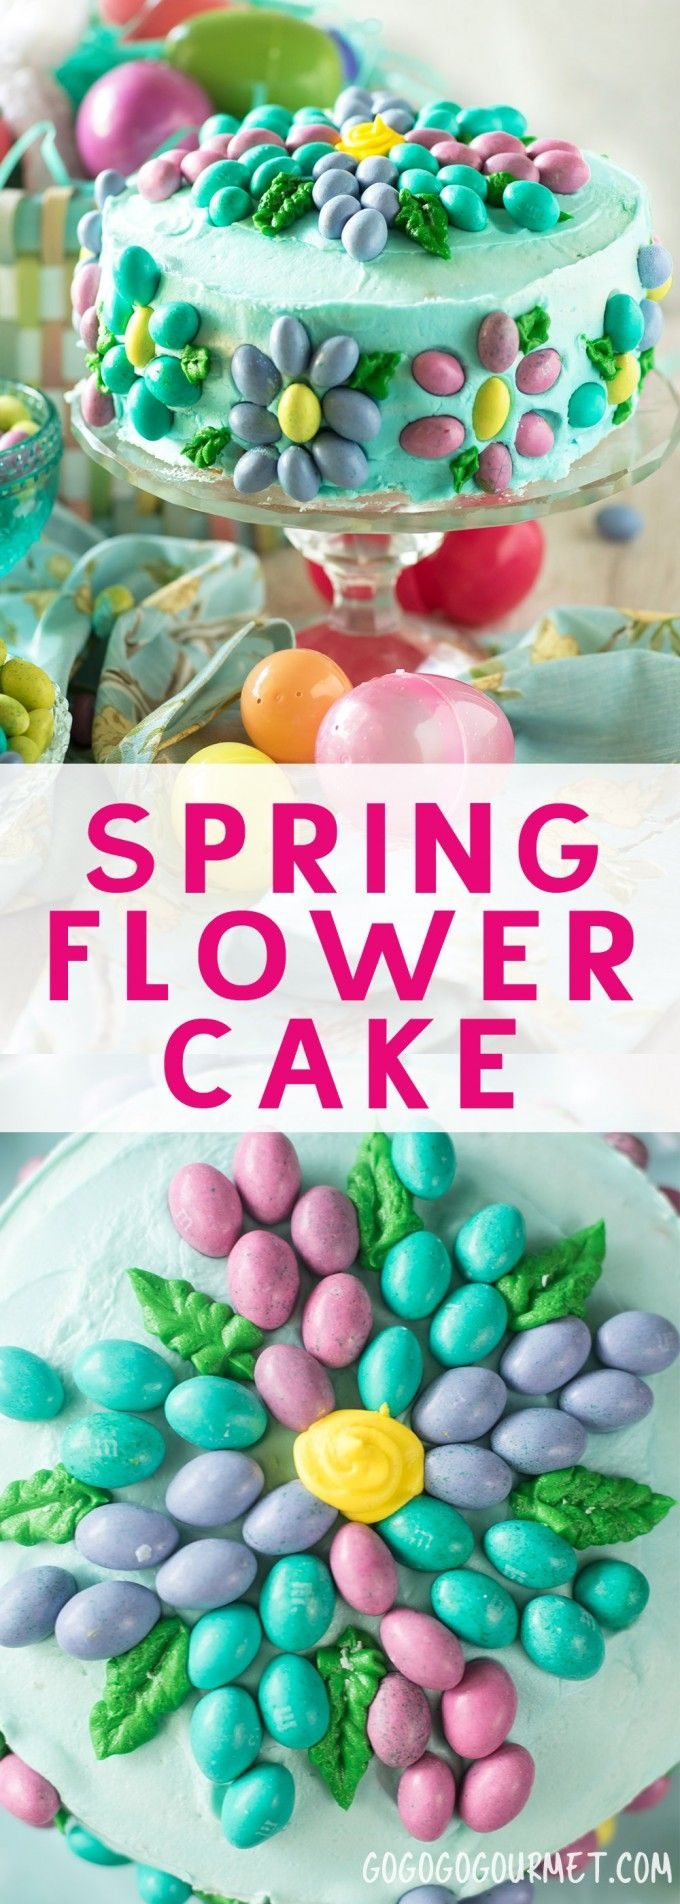 Cake Decorating Spring Flowers : 392 best images about Pretty cakes on Pinterest